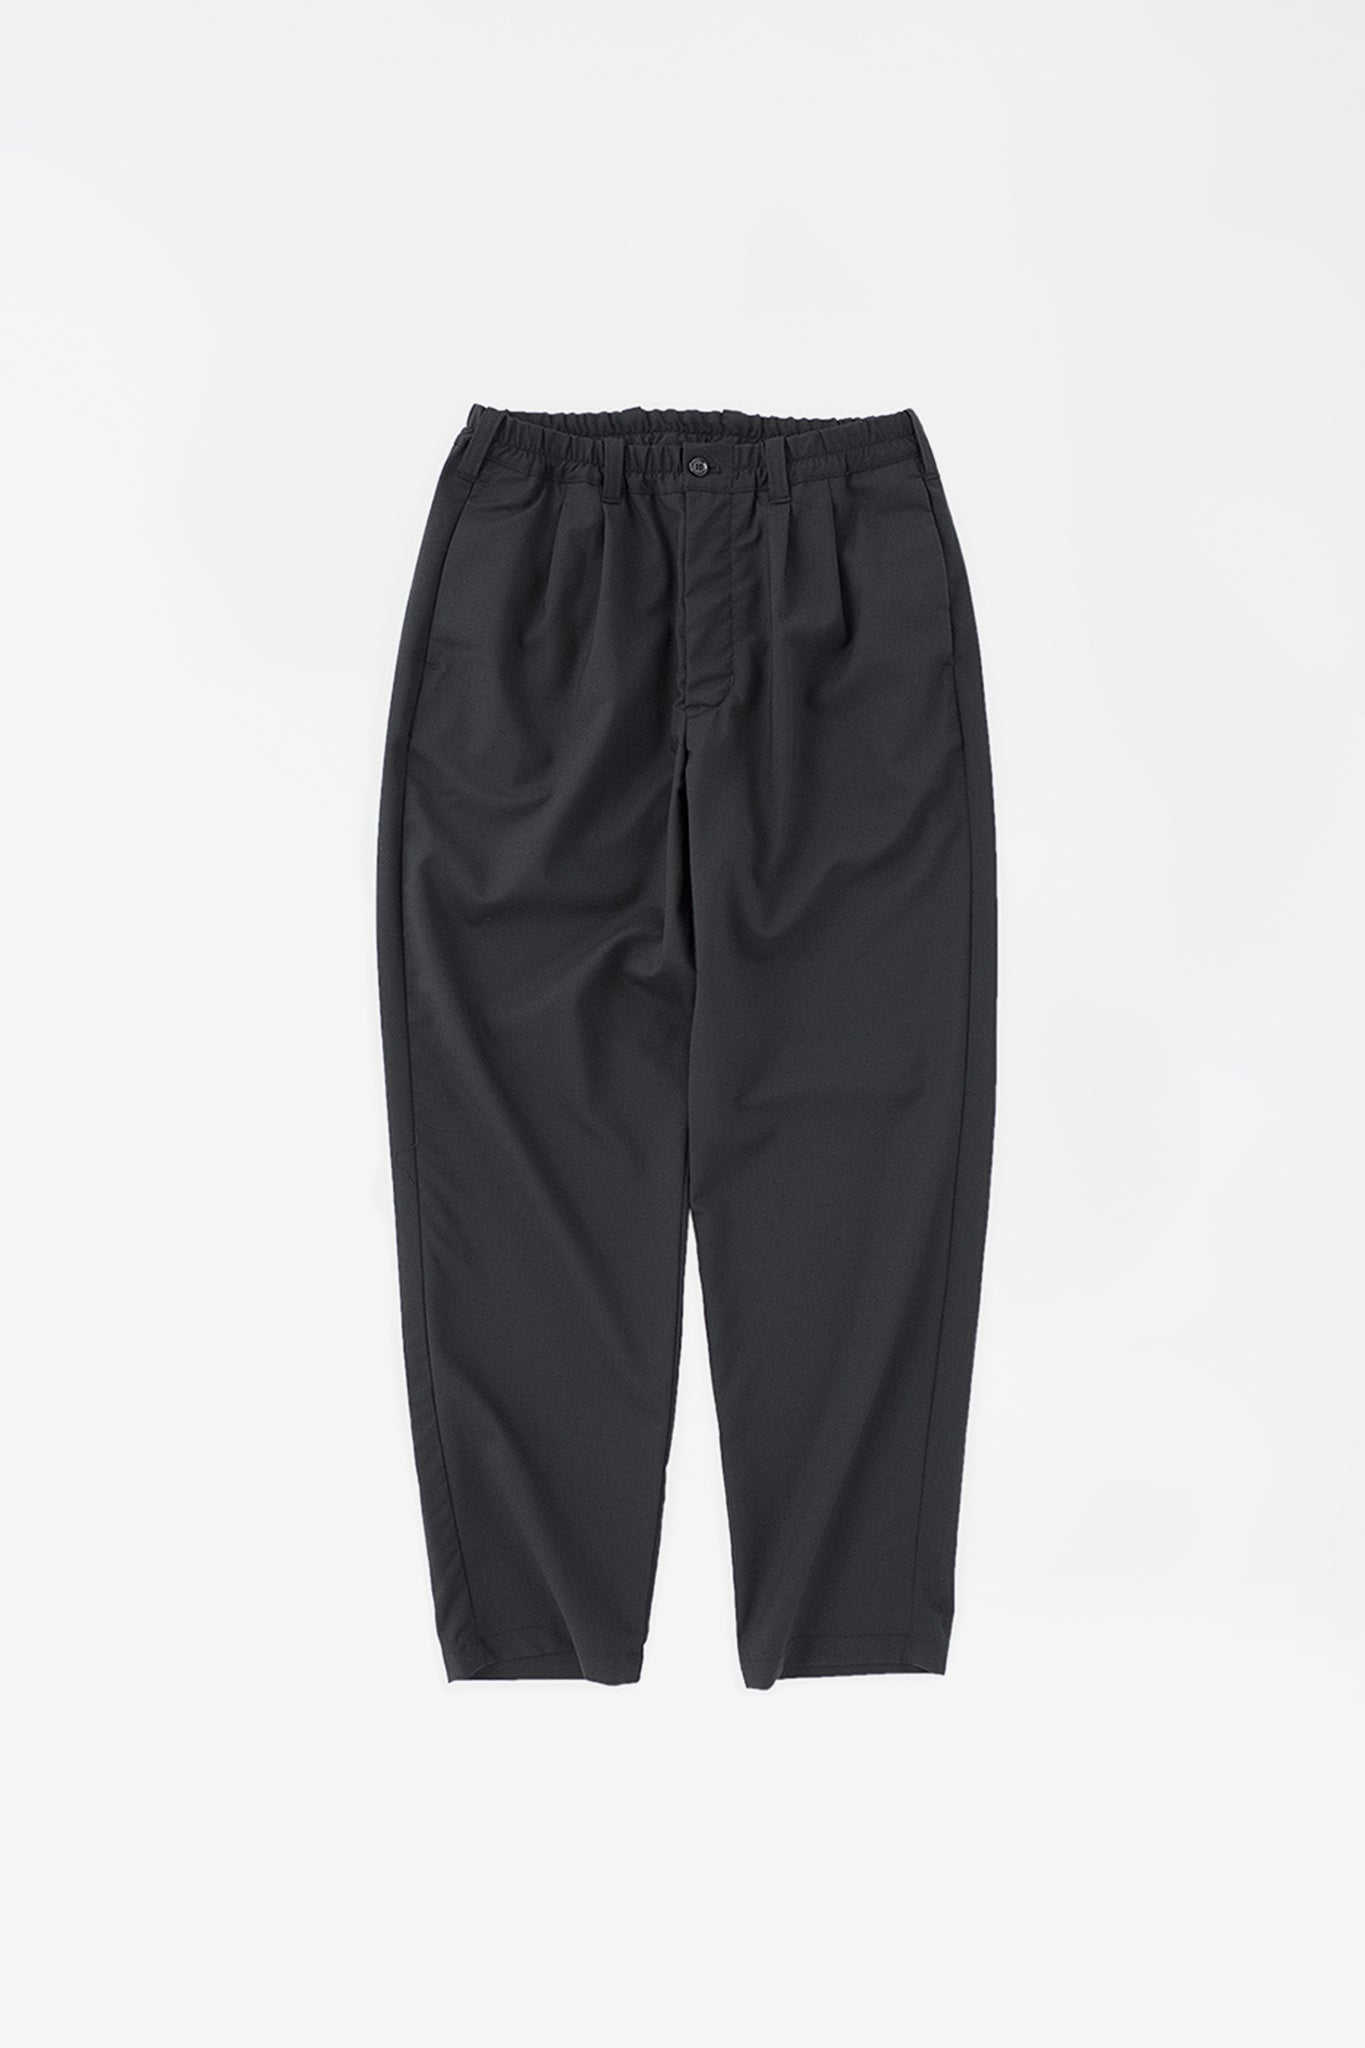 Regular tapered pants black check